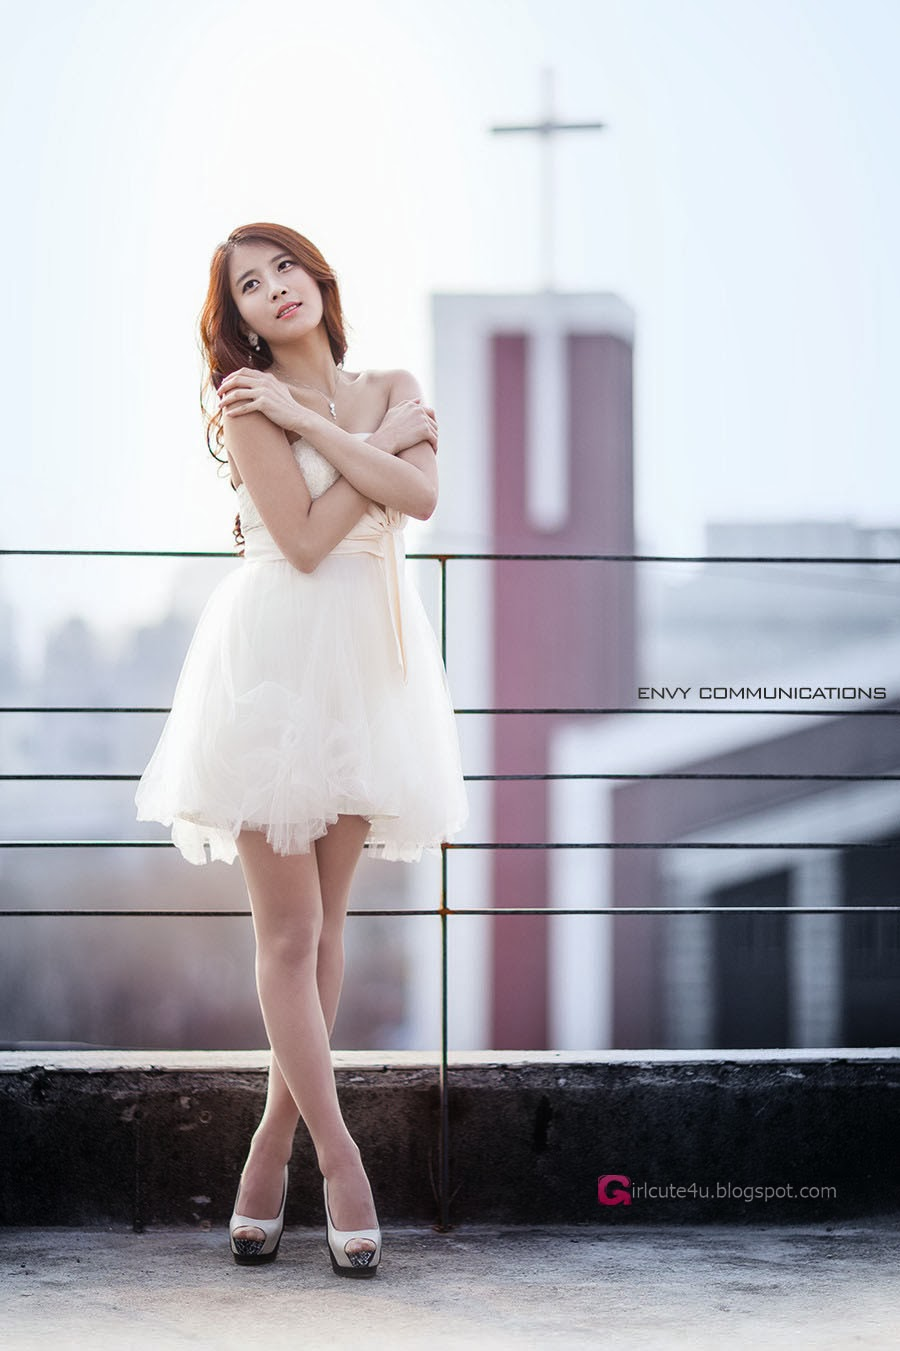 2 Cha Jung Ah - Up On The Roof - very cute asian girl-girlcute4u.blogspot.com